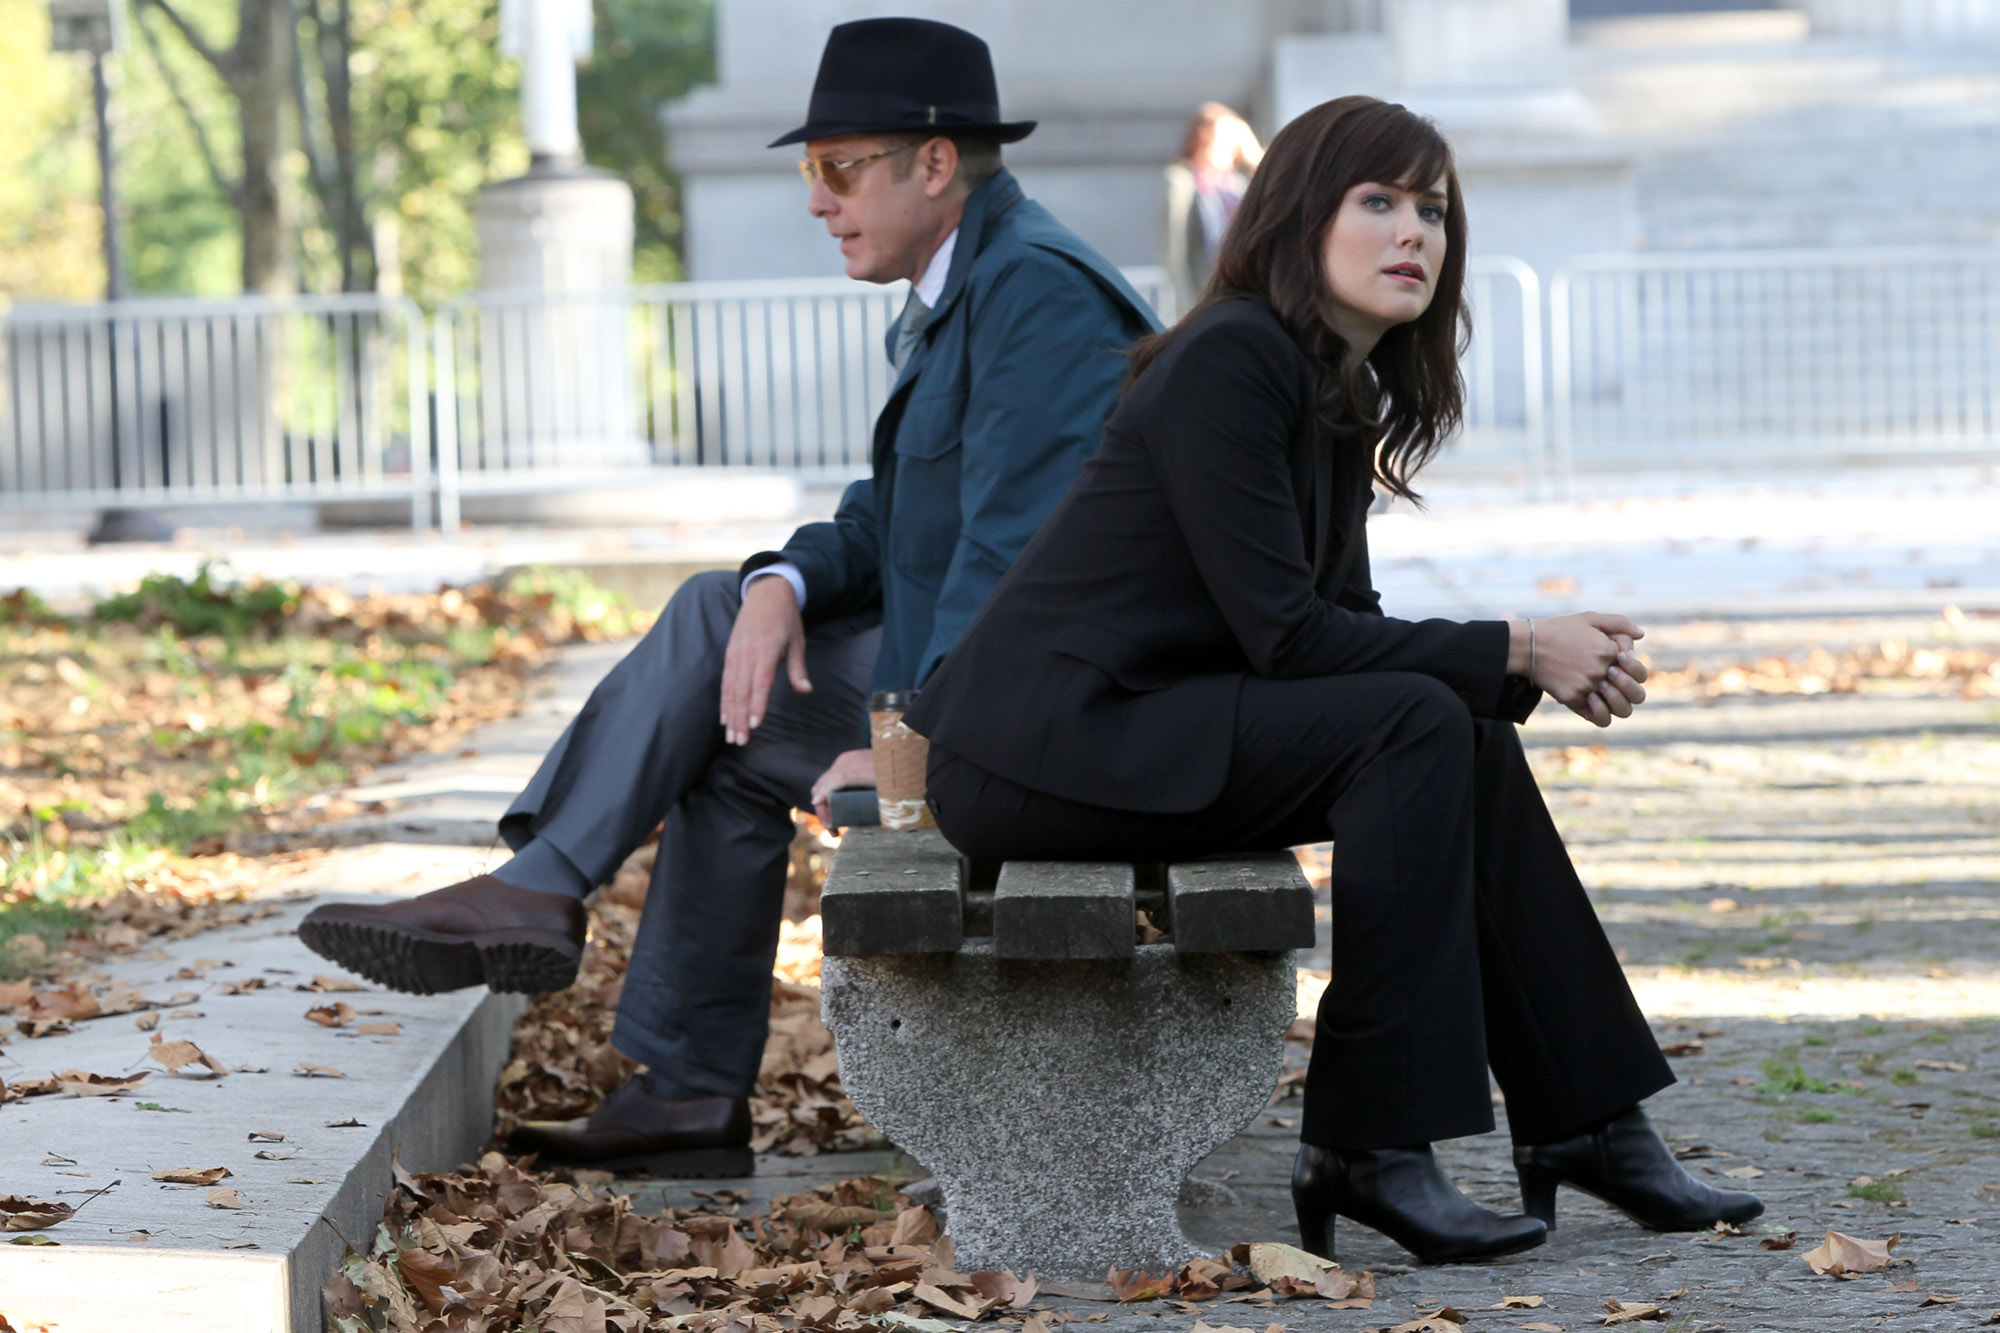 Scandal, Super Fun Night, and The Blacklist [Lazlo's Clicker]